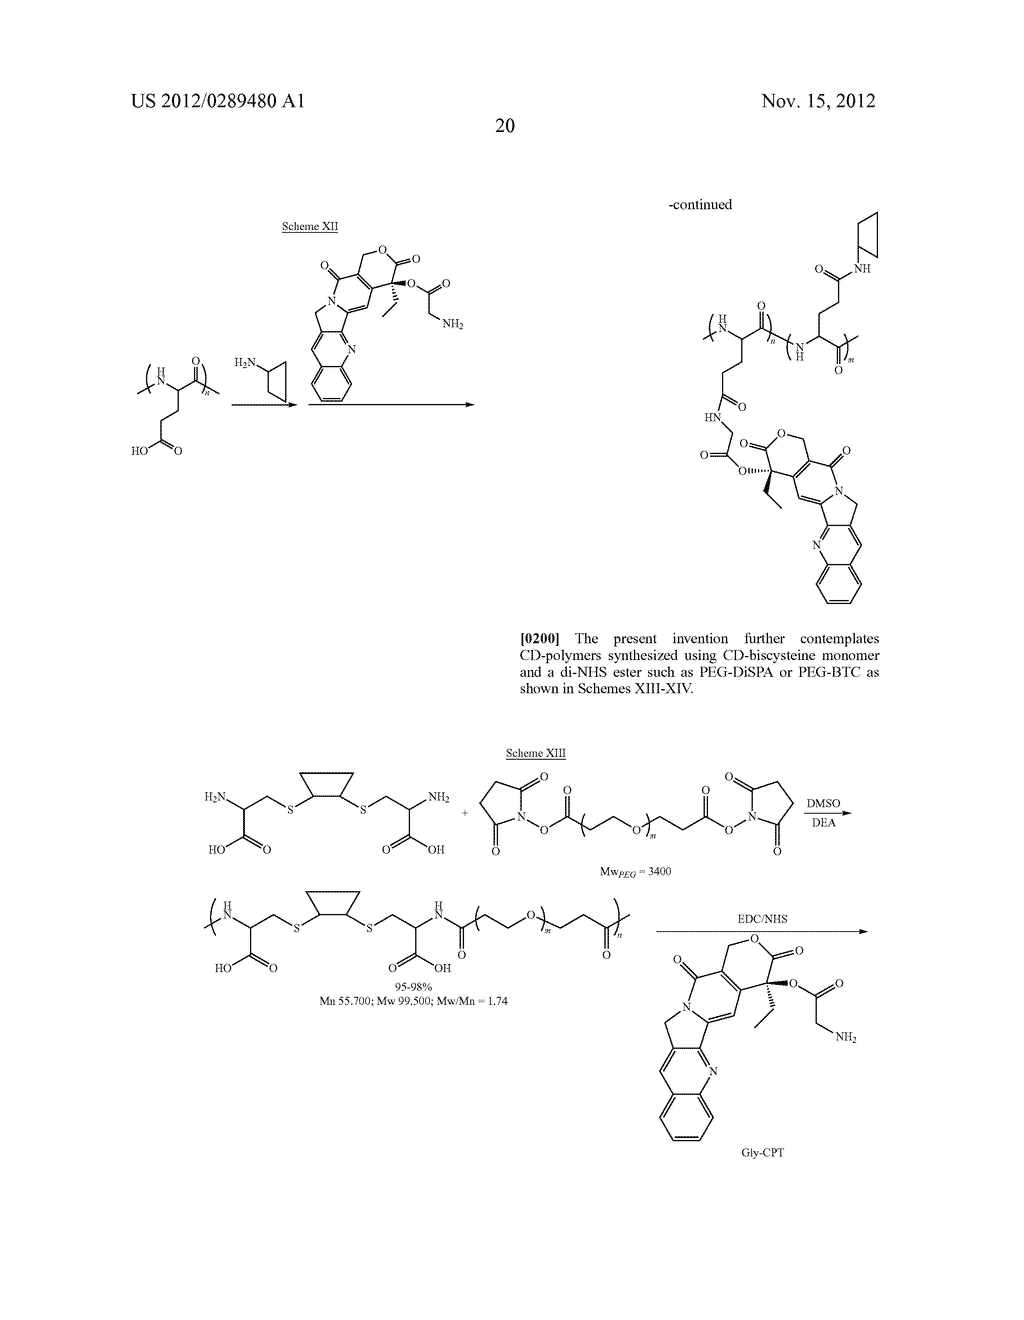 CYCLODEXTRIN-BASED POLYMERS FOR THERAPEUTICS DELIVERY - diagram, schematic, and image 32